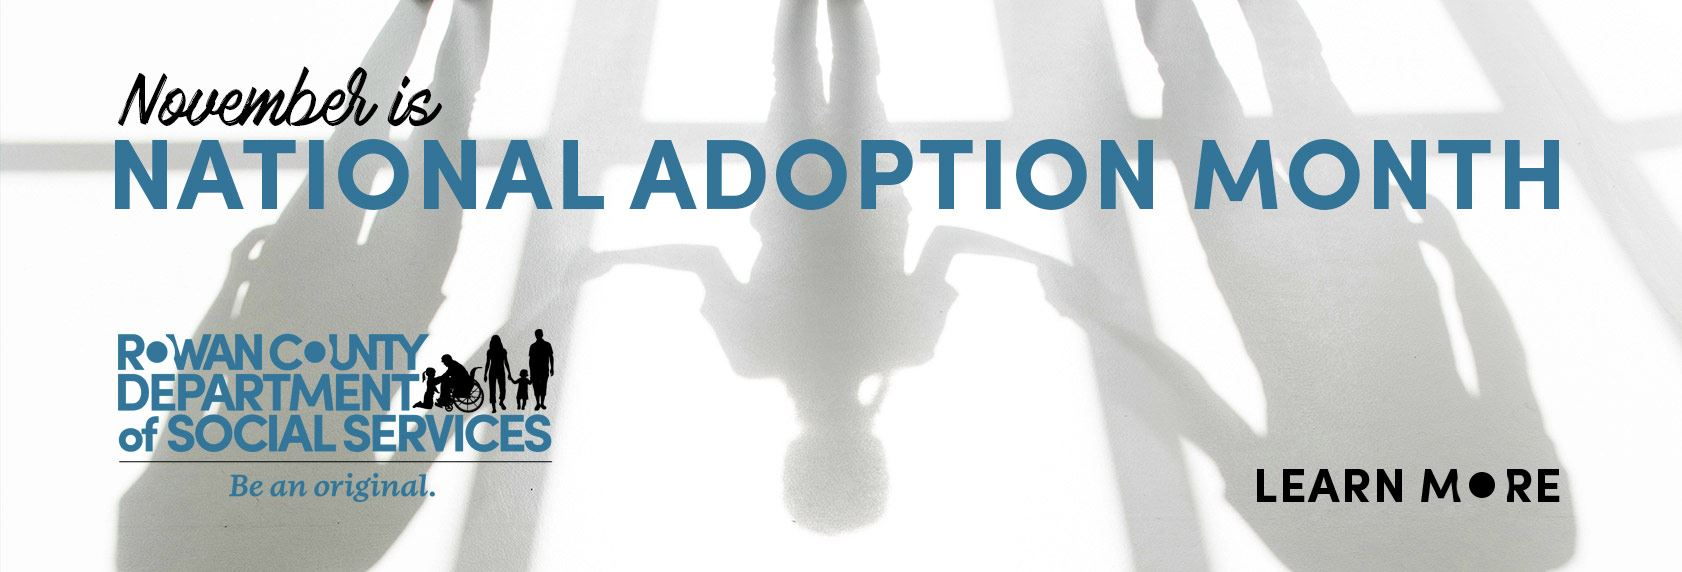 November is National Adoption Month - Learn More